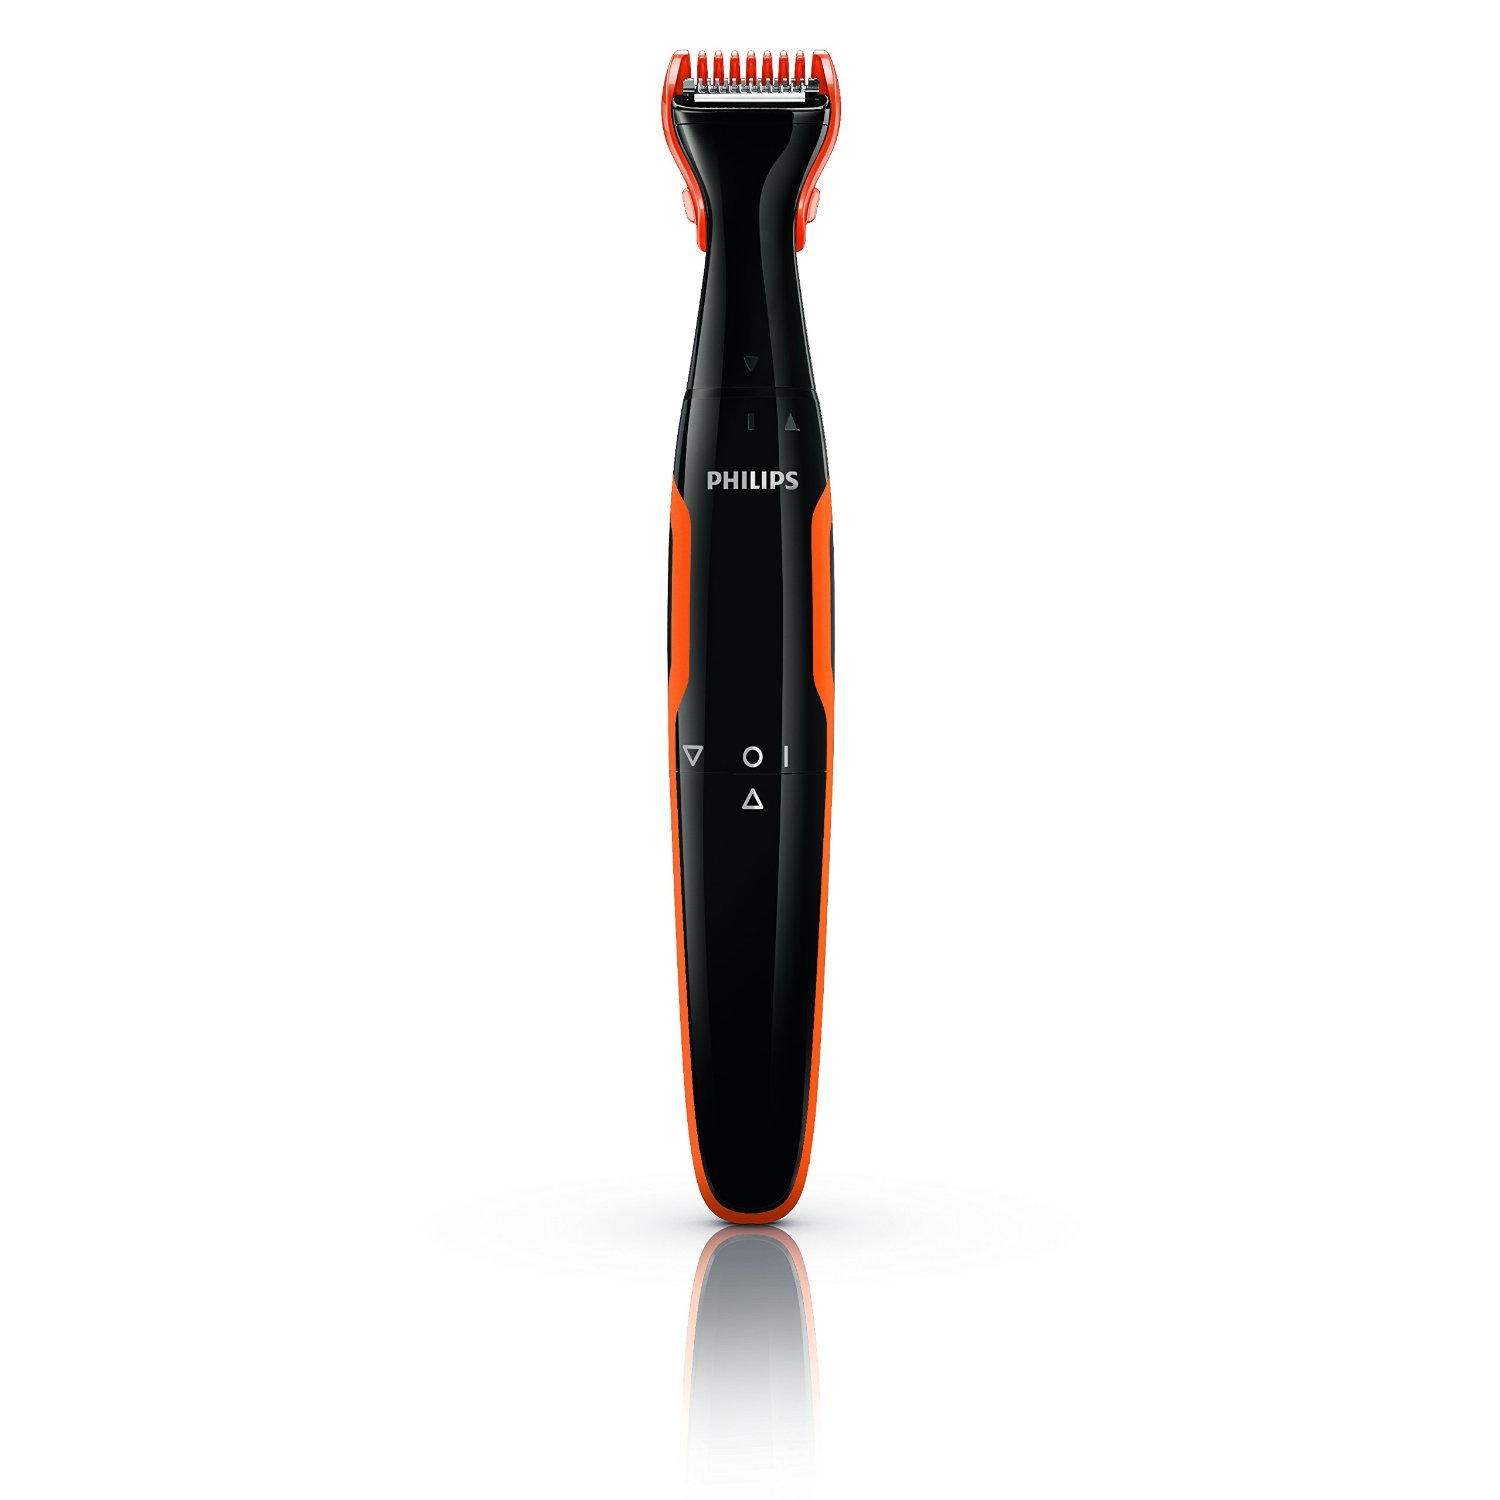 Speaking, advise Mens facial hair trimmer agree, this